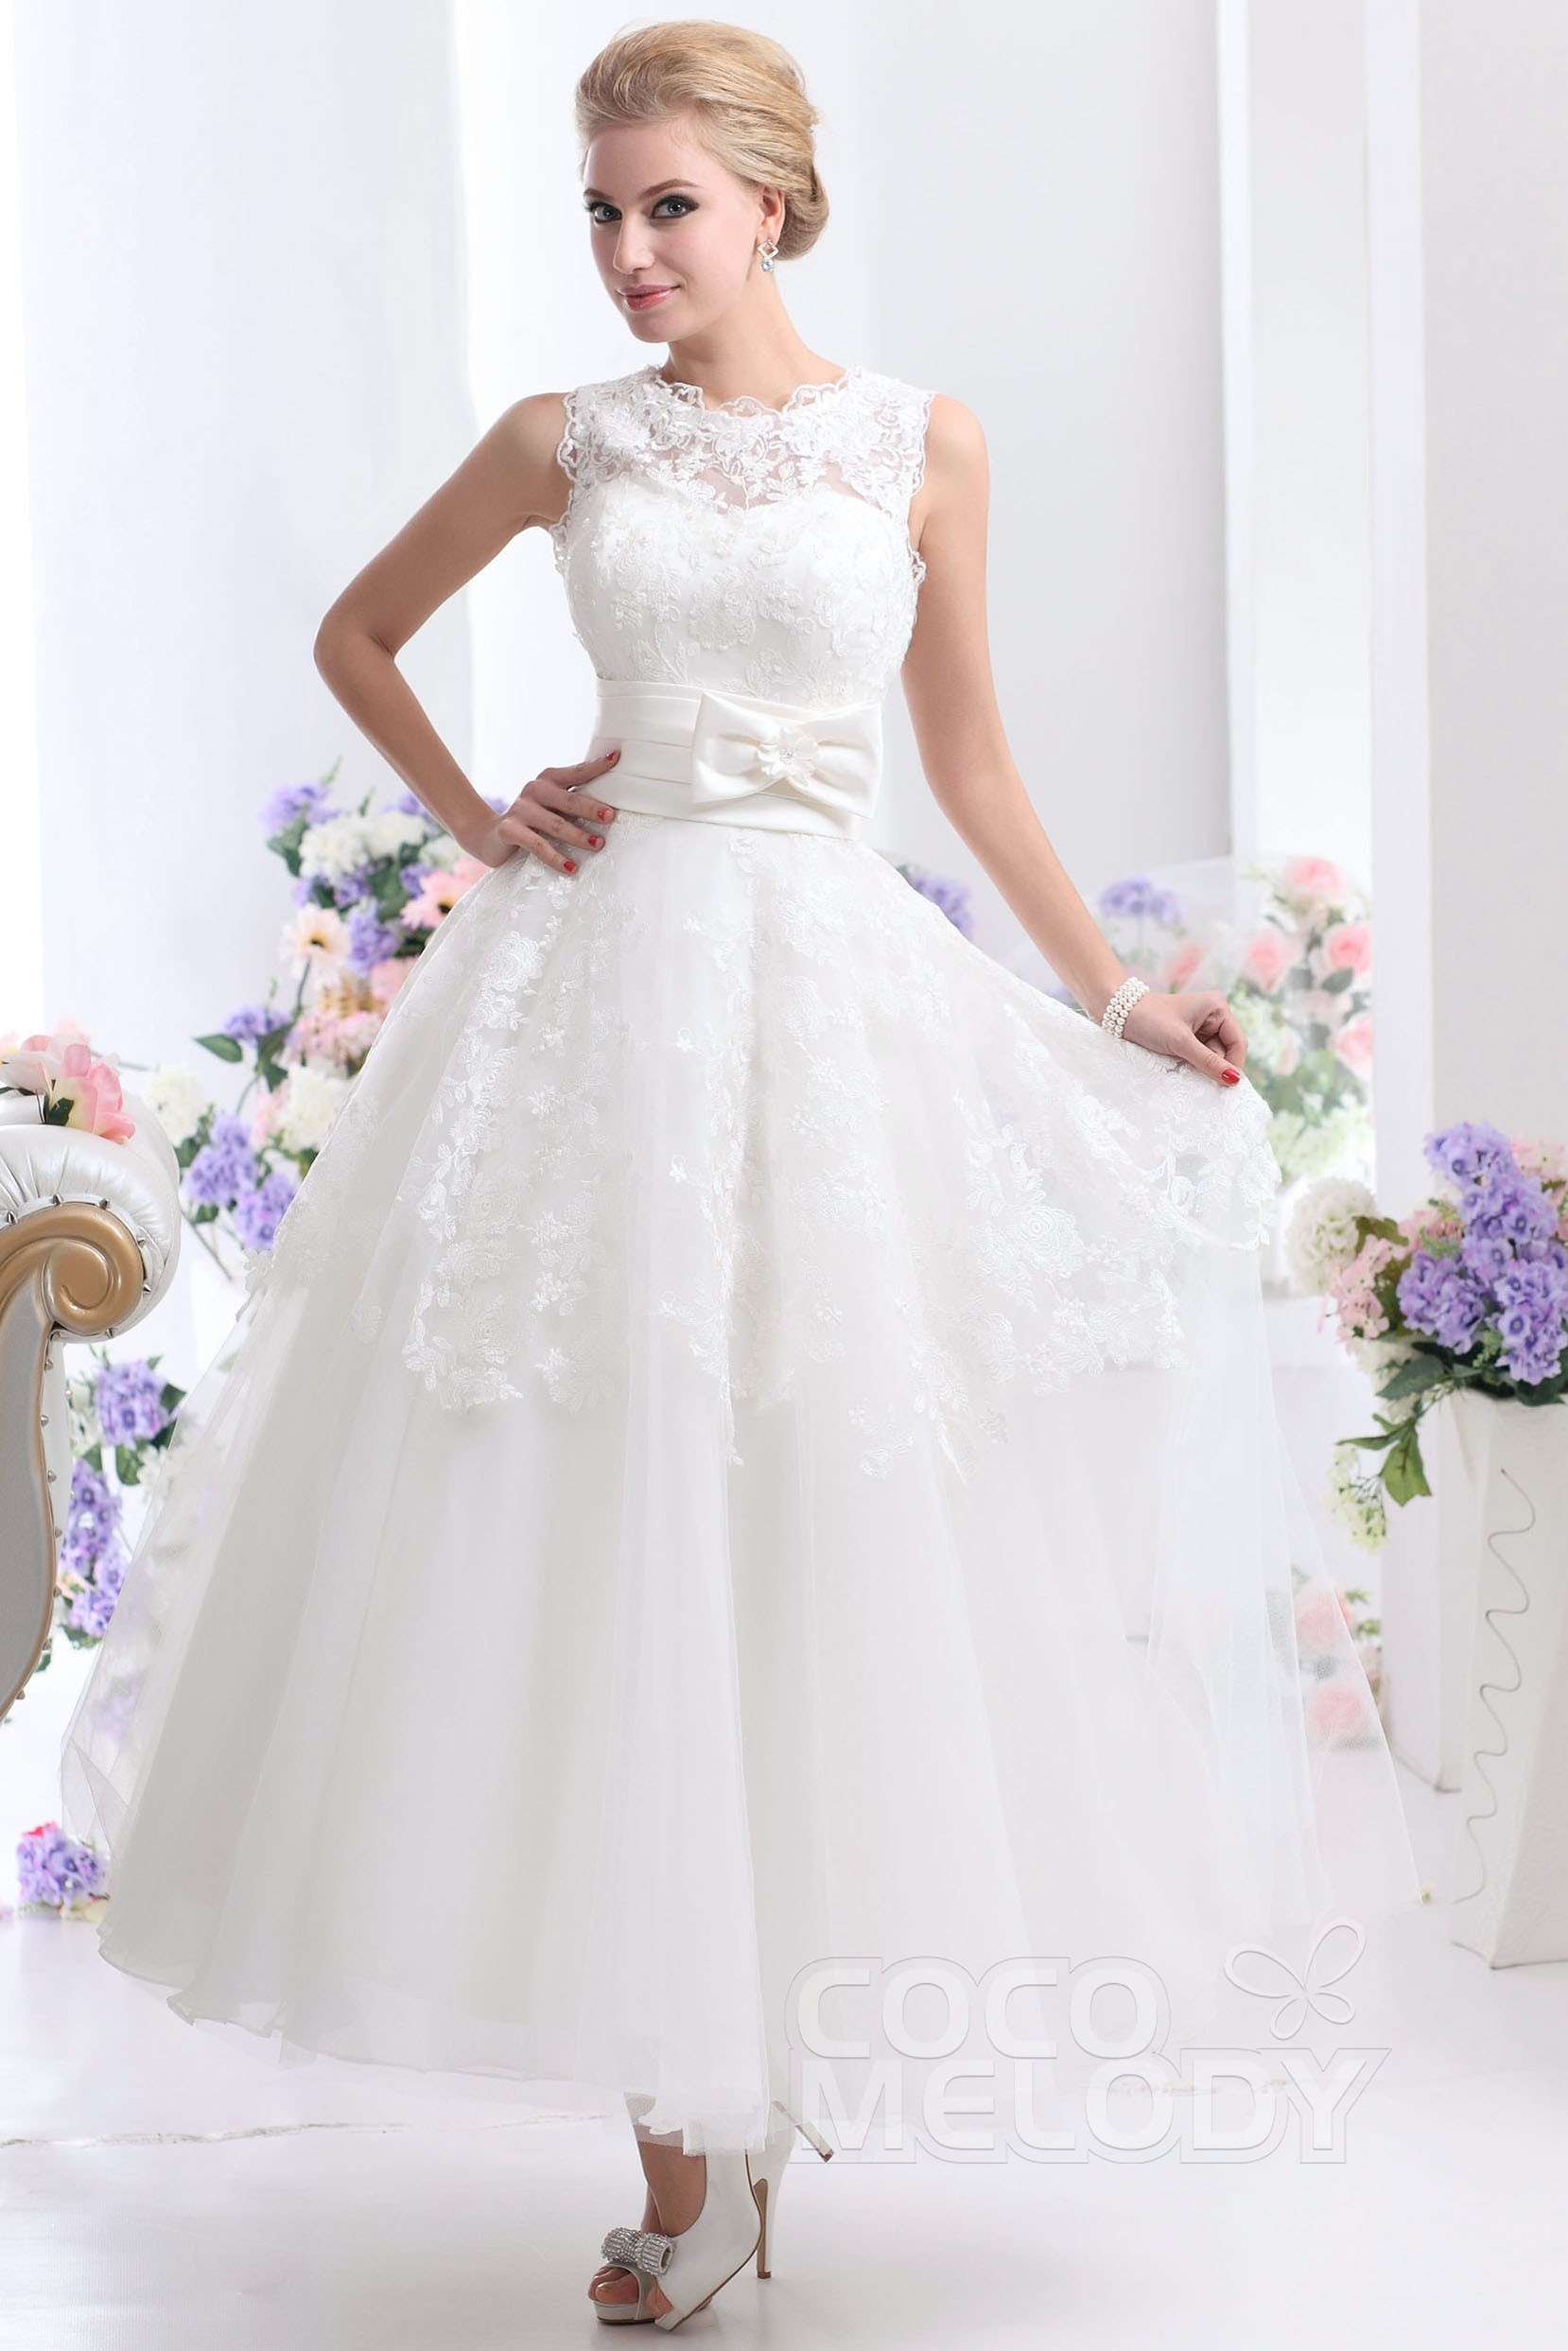 d99895f707a19 Pretty A-Line Illusion Natural Ankle Length Tulle and Lace Sleeveless Zipper  Wedding Dress with